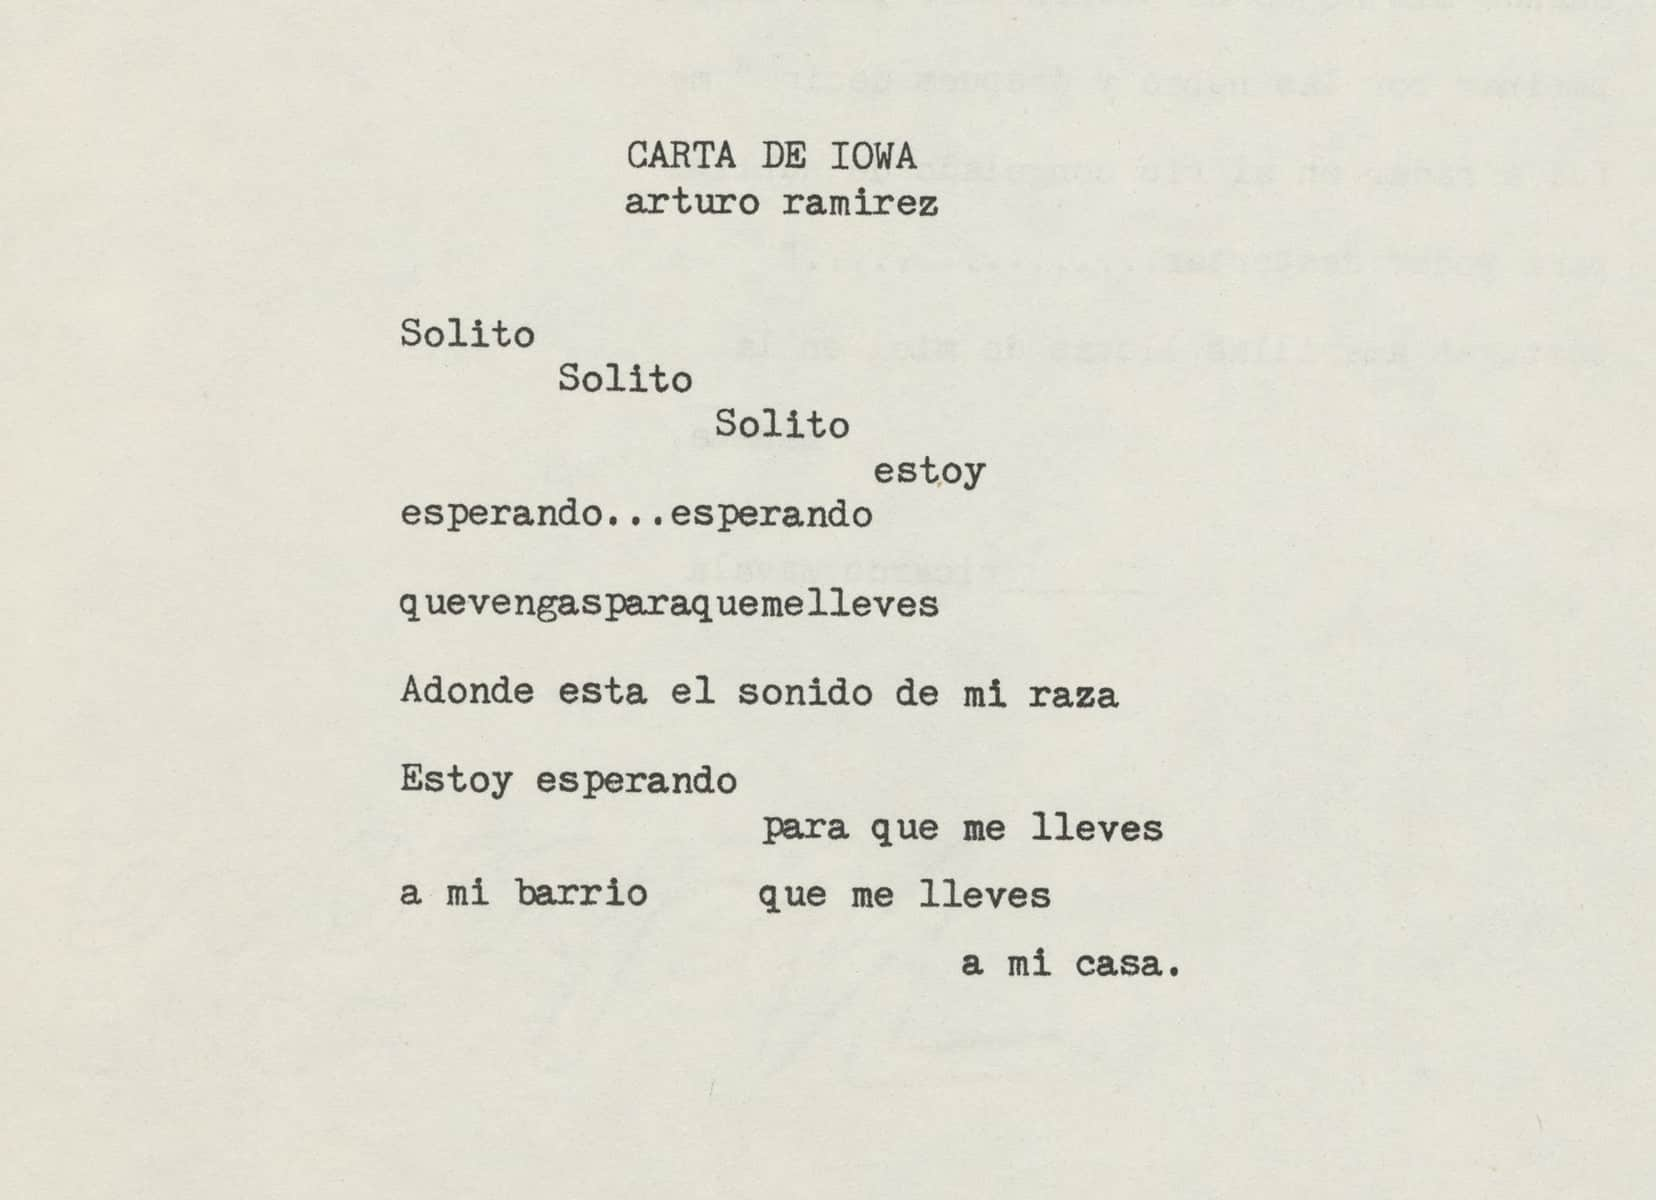 A typewritten poem by Arturo Ramirez. The words are in Spanish. The image itself has the words of the poem included in alt text format.